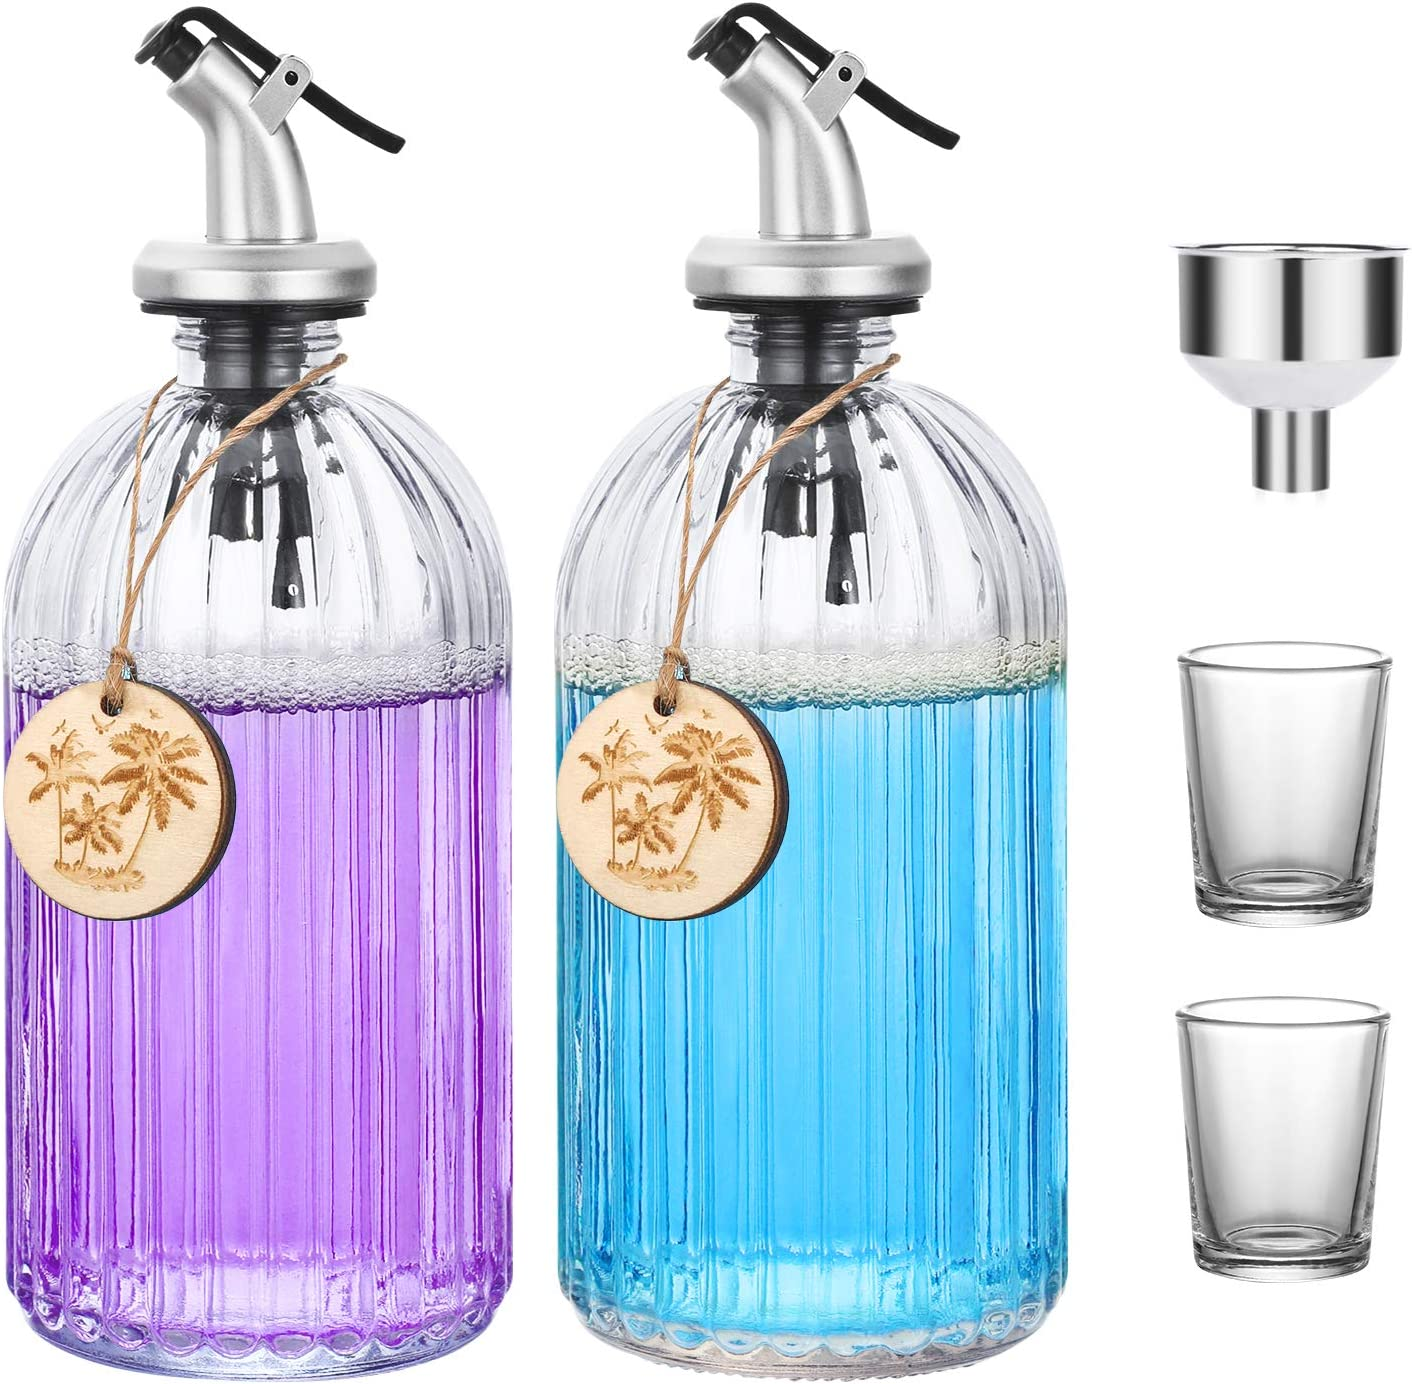 Aozita Clear Glass Mouthwash Refillable excellence OFFicial store Bottle - Dispenser